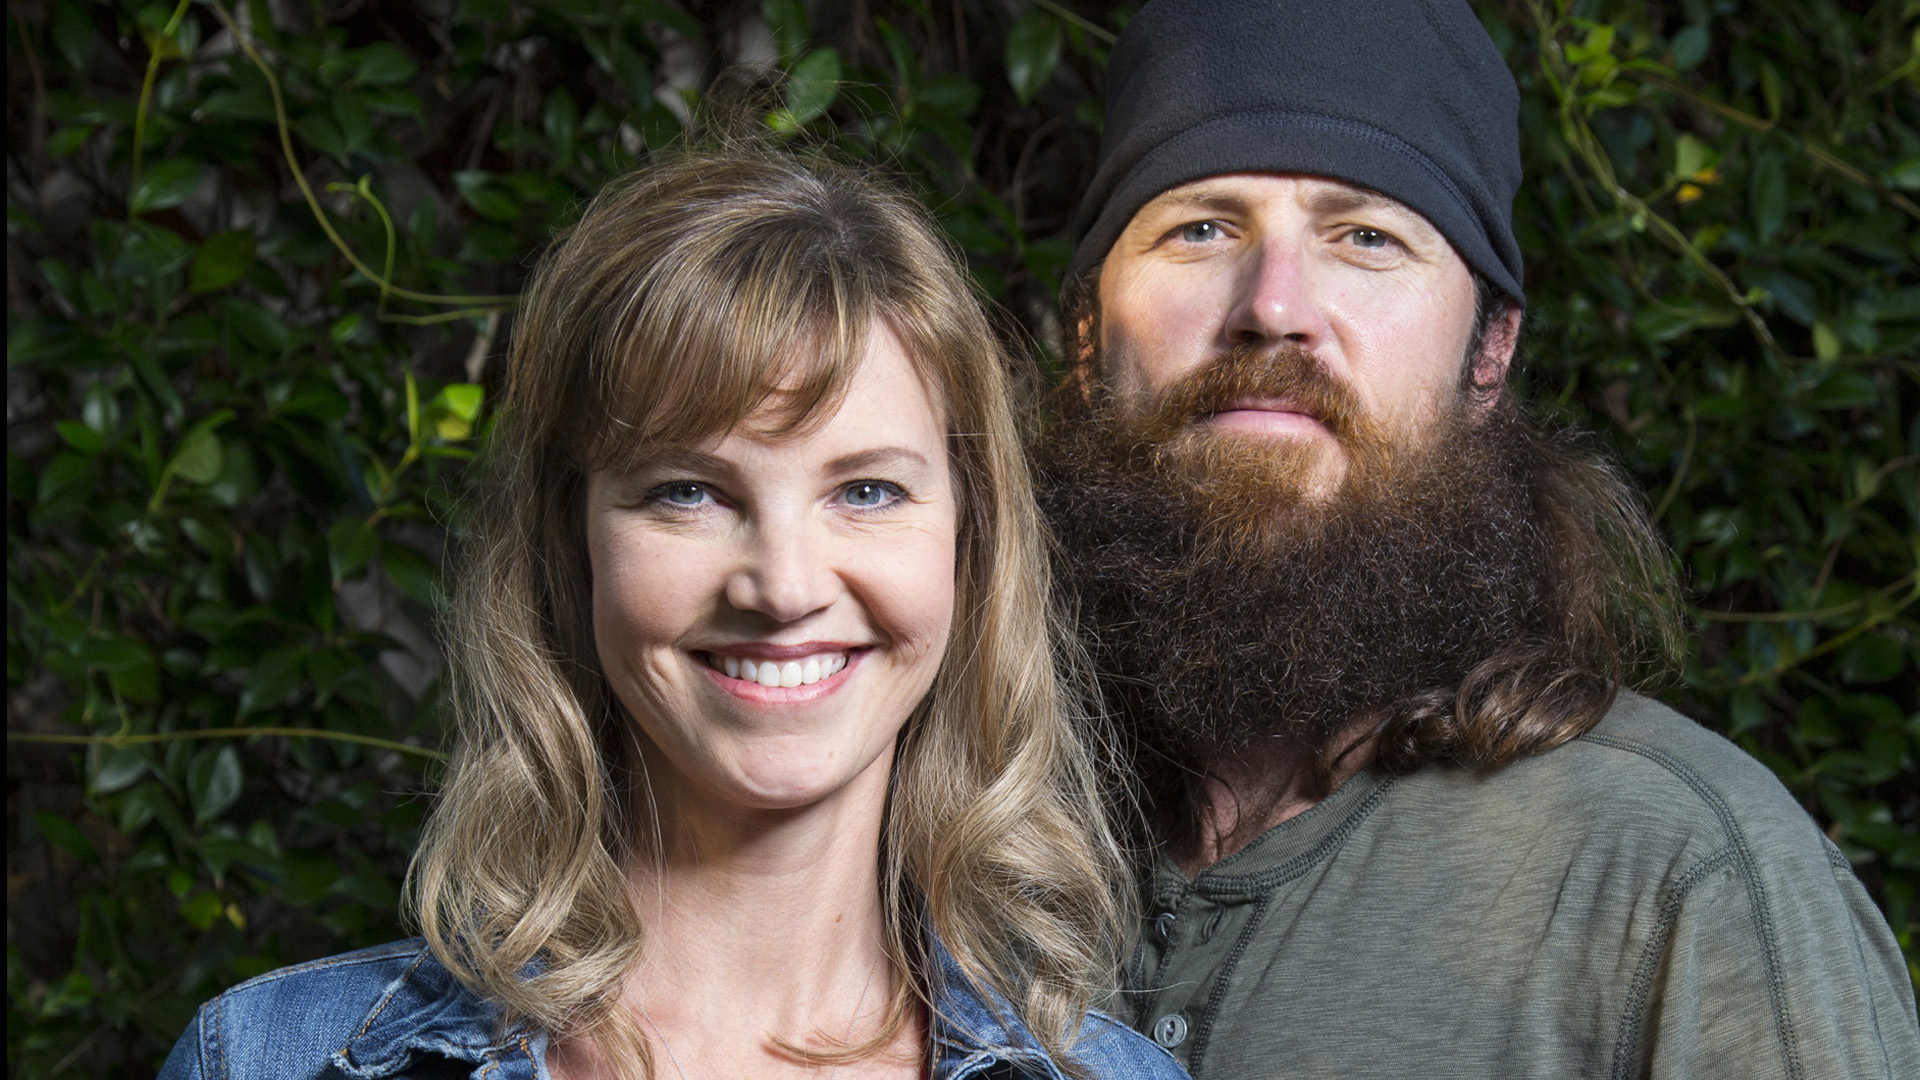 Jase and Missy in Duck Dynasty. Jase is wearing a beanie while Jessica is wearing a jean jacket